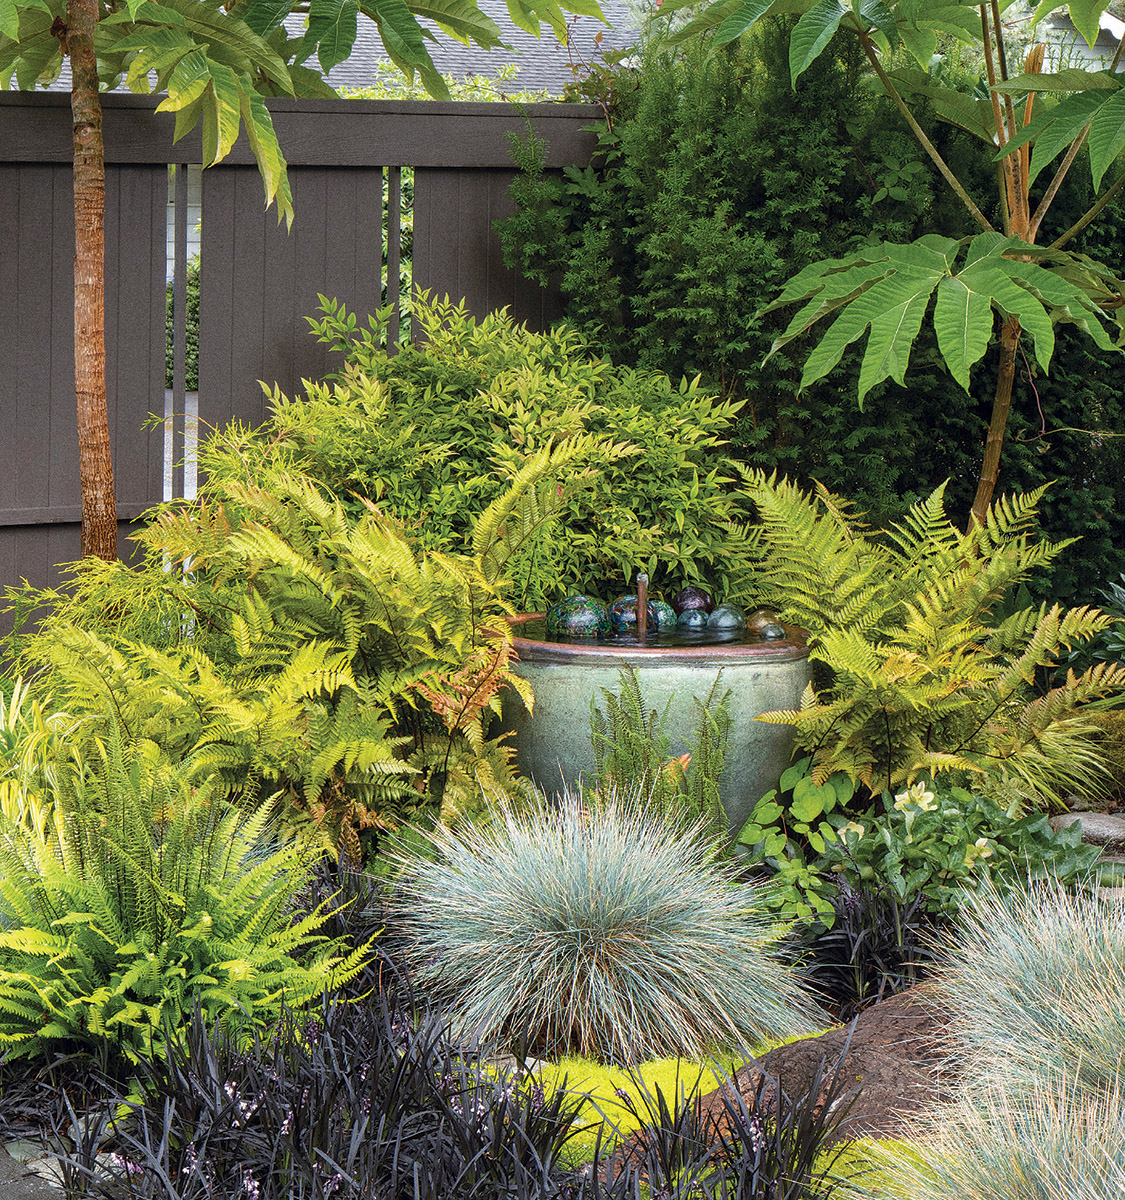 Chartreuse becomes the garden star when it leans more toward yellow or gold. These 'Brilliance' autumn ferns against the dark fence and draw your attention to the container water feature they surround. As the fronds pick up more reddish russet tones, their connection to the trunks of the fatsias becomes even stronger.